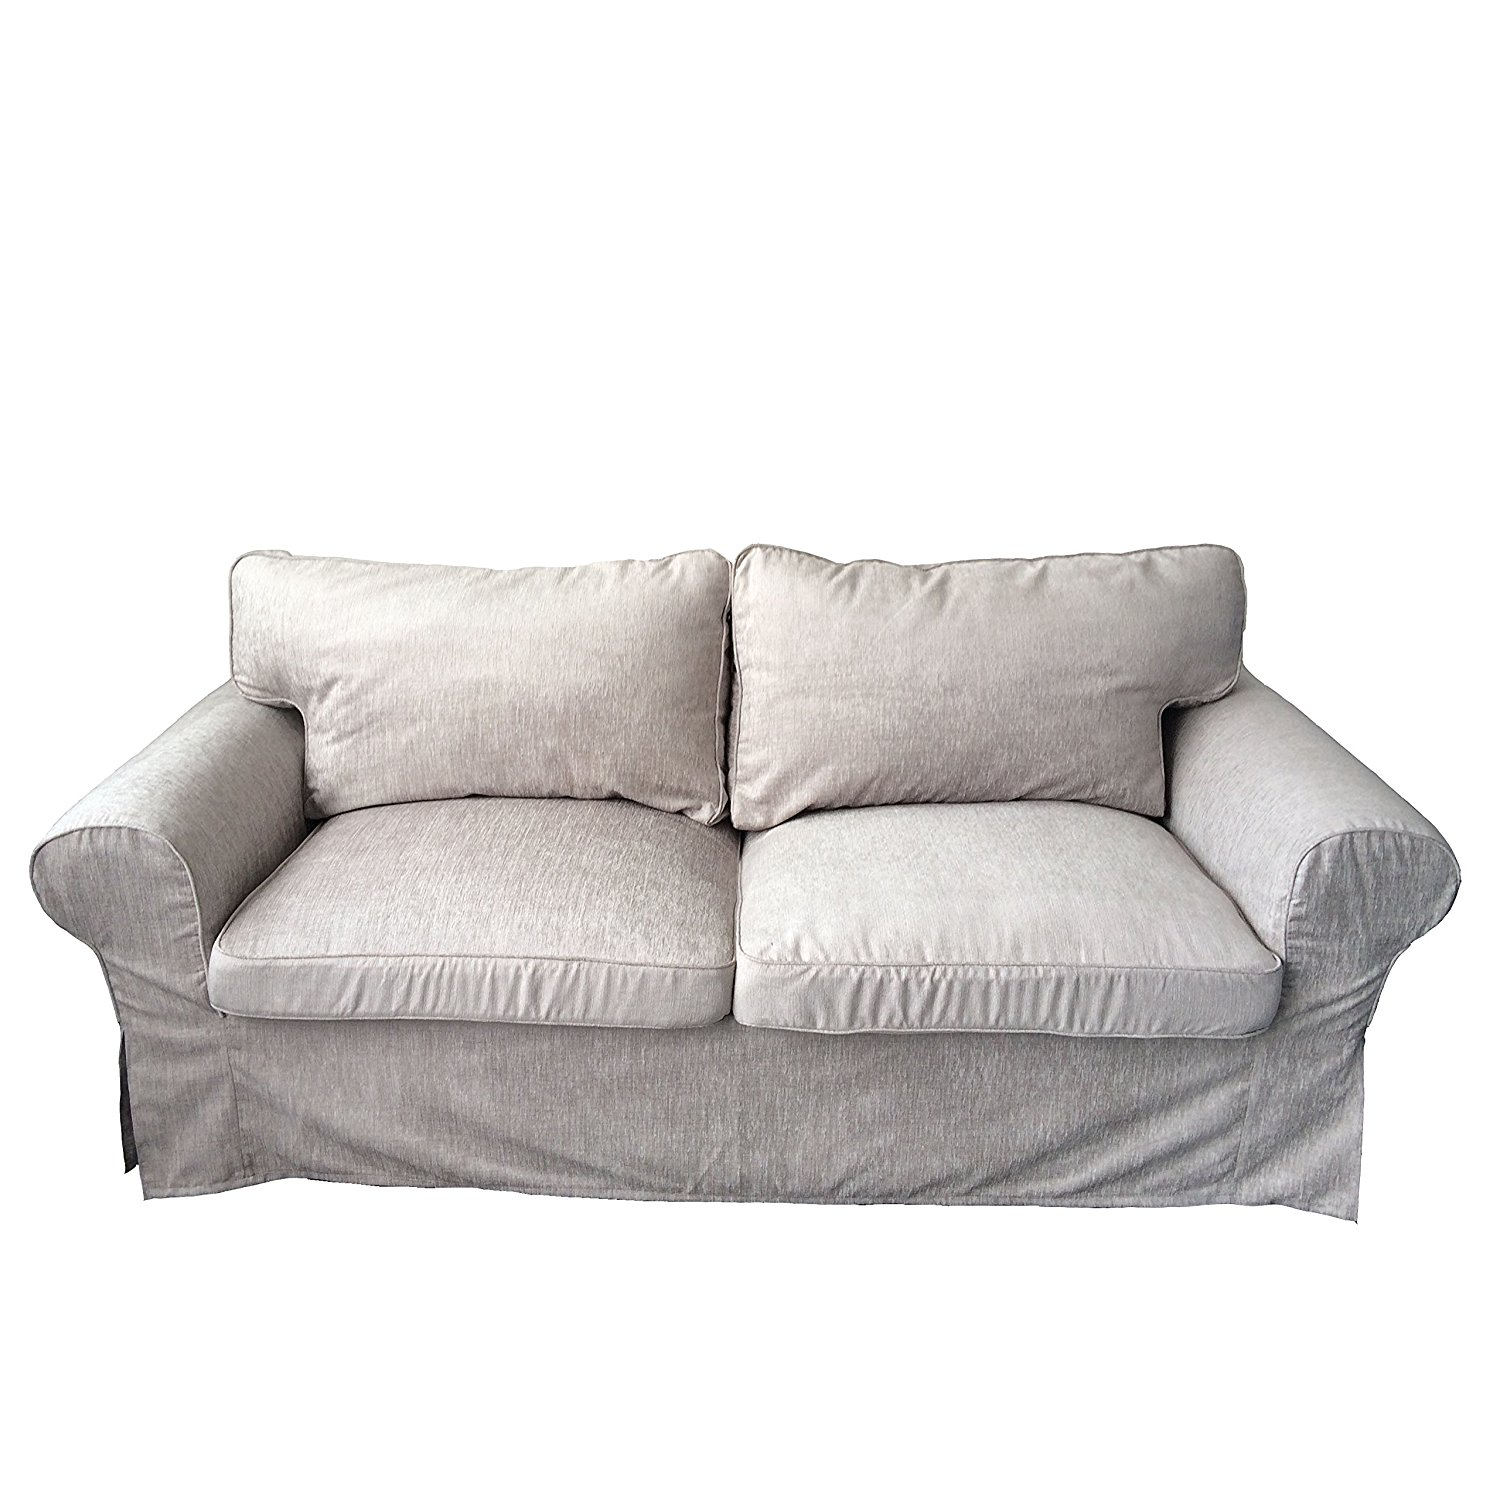 Cheap Gray Sofa Cover, find Gray Sofa Cover deals on line at ...